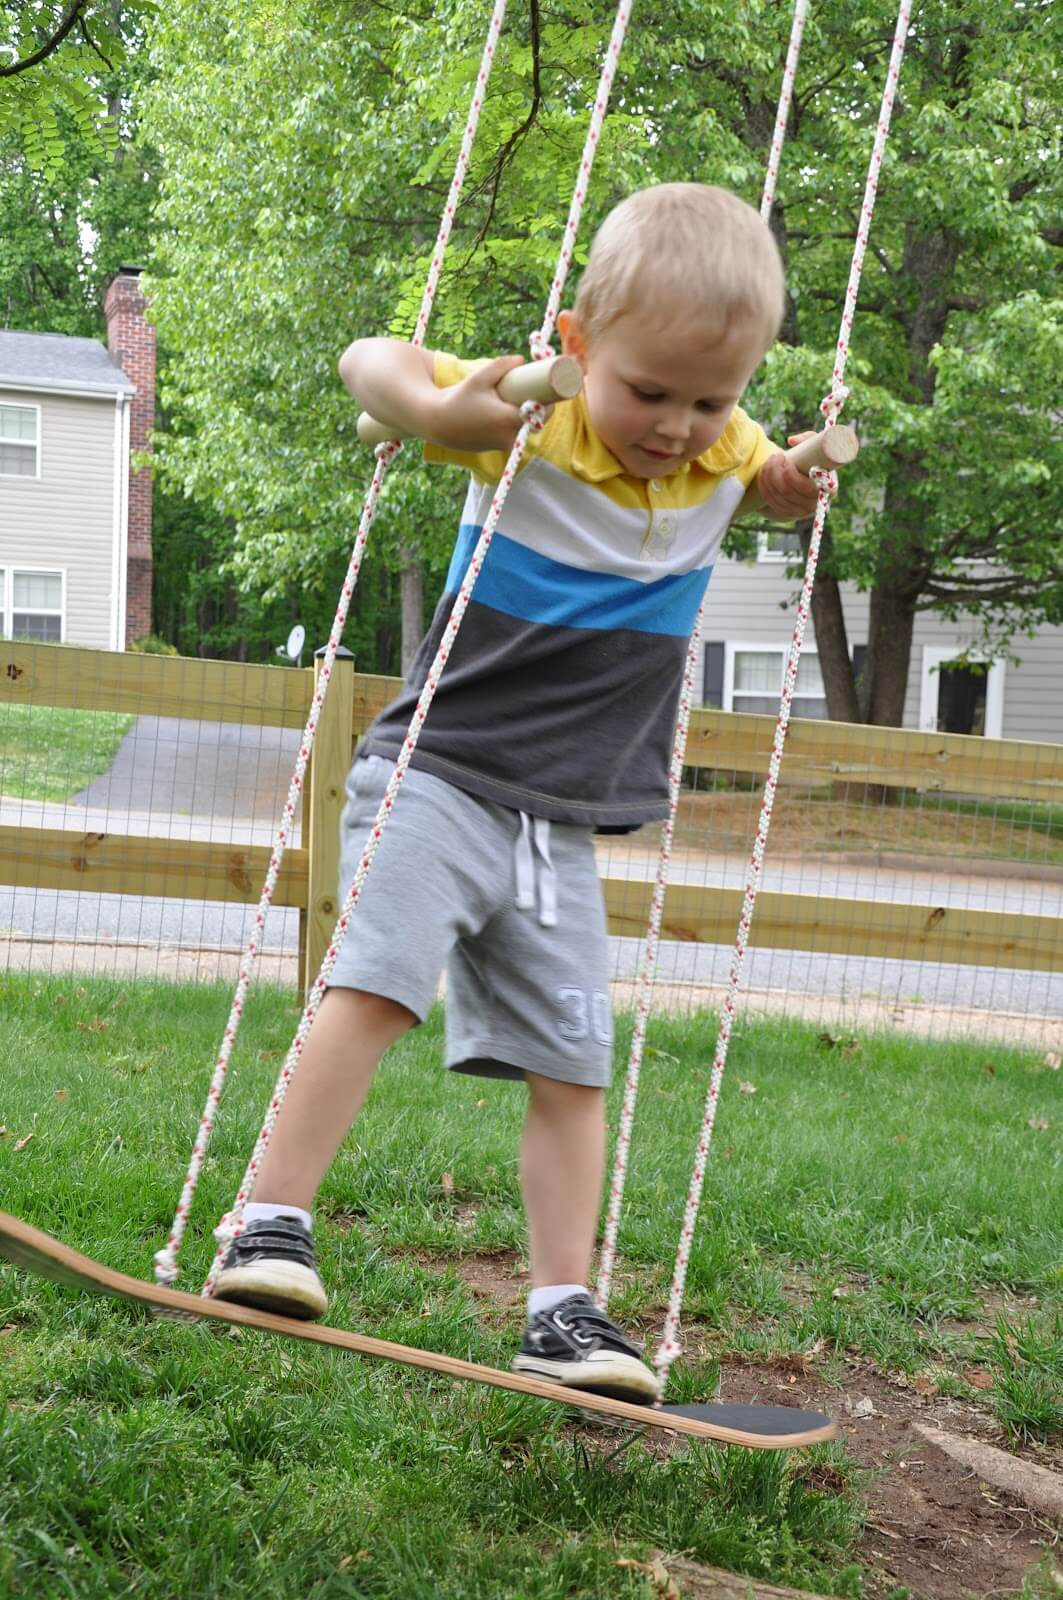 A Skateboard Swing with Handles for Safety